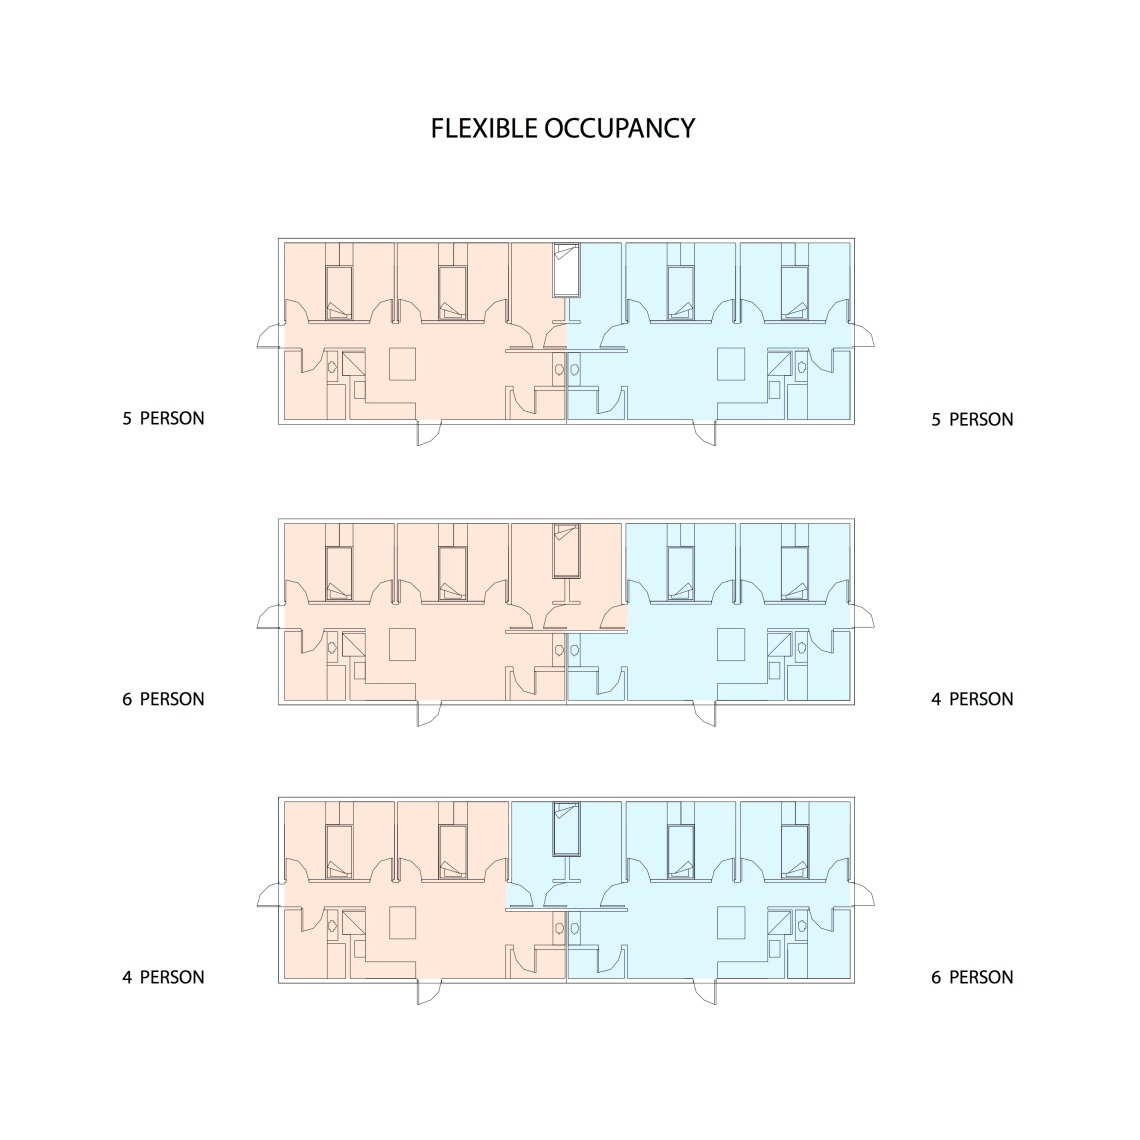 Unit Configuration - Flexible Occupancy